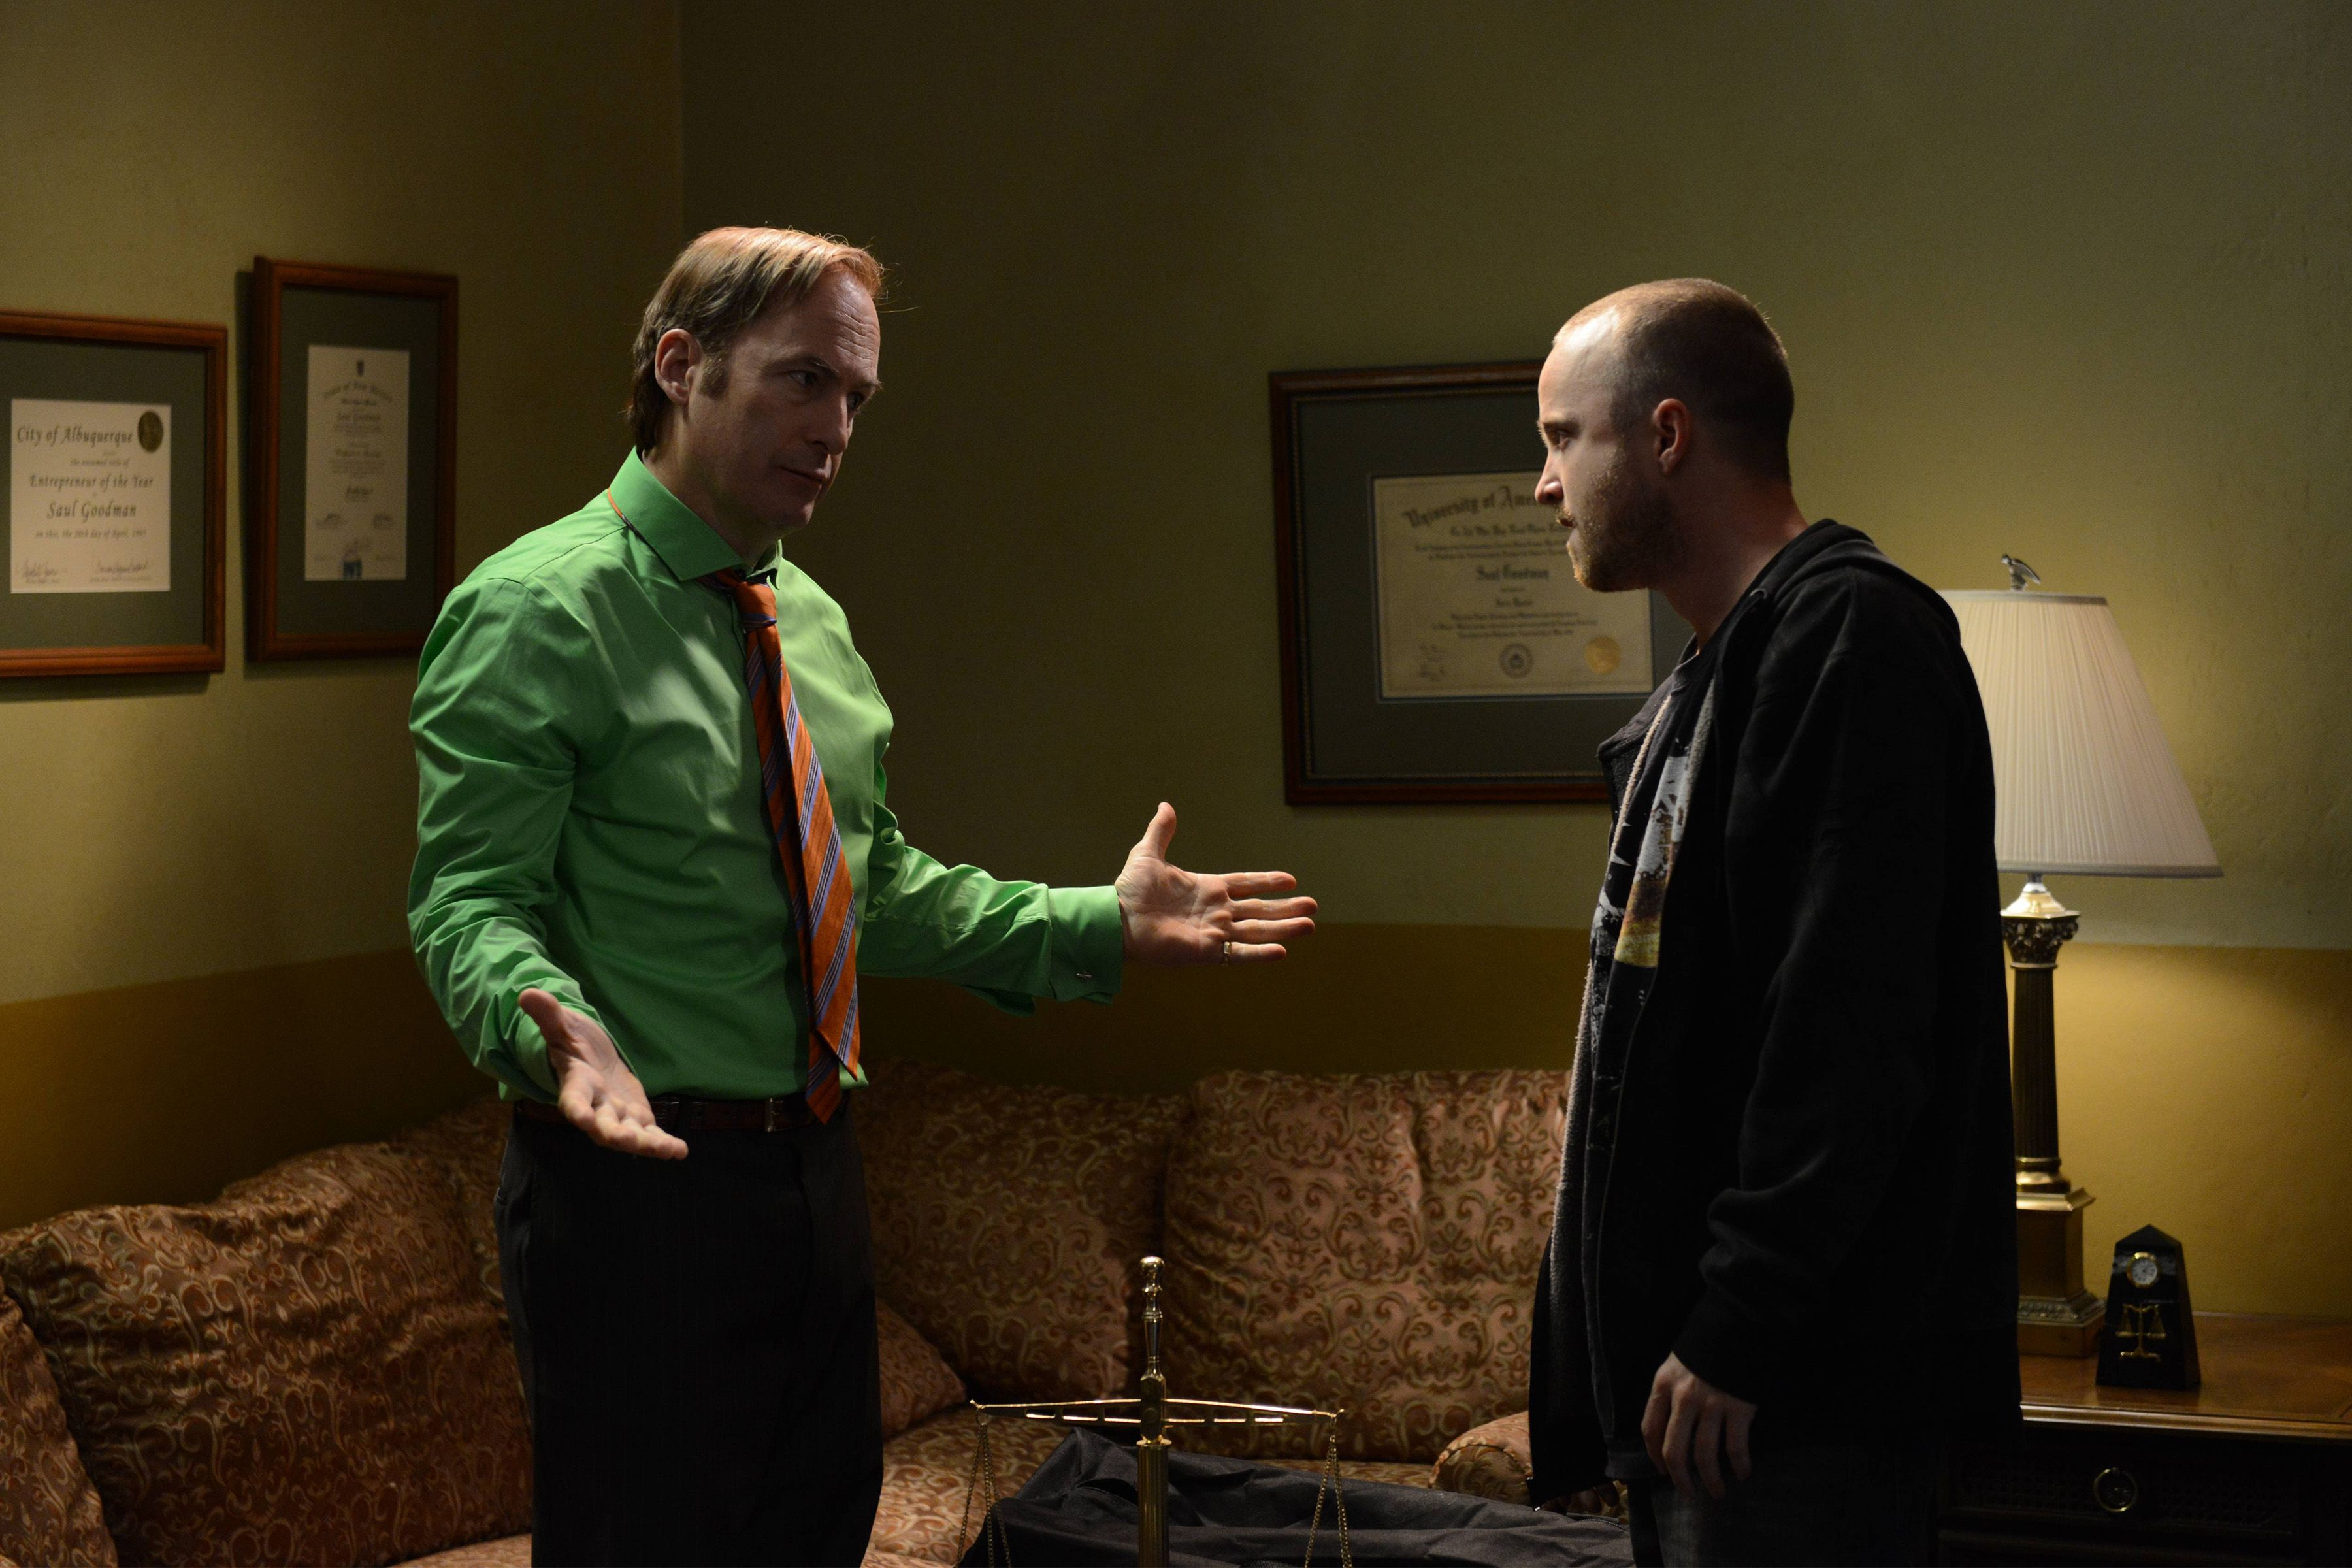 El Camino's Aaron Paul reveals whether fans will see Jesse in Better Call Saul